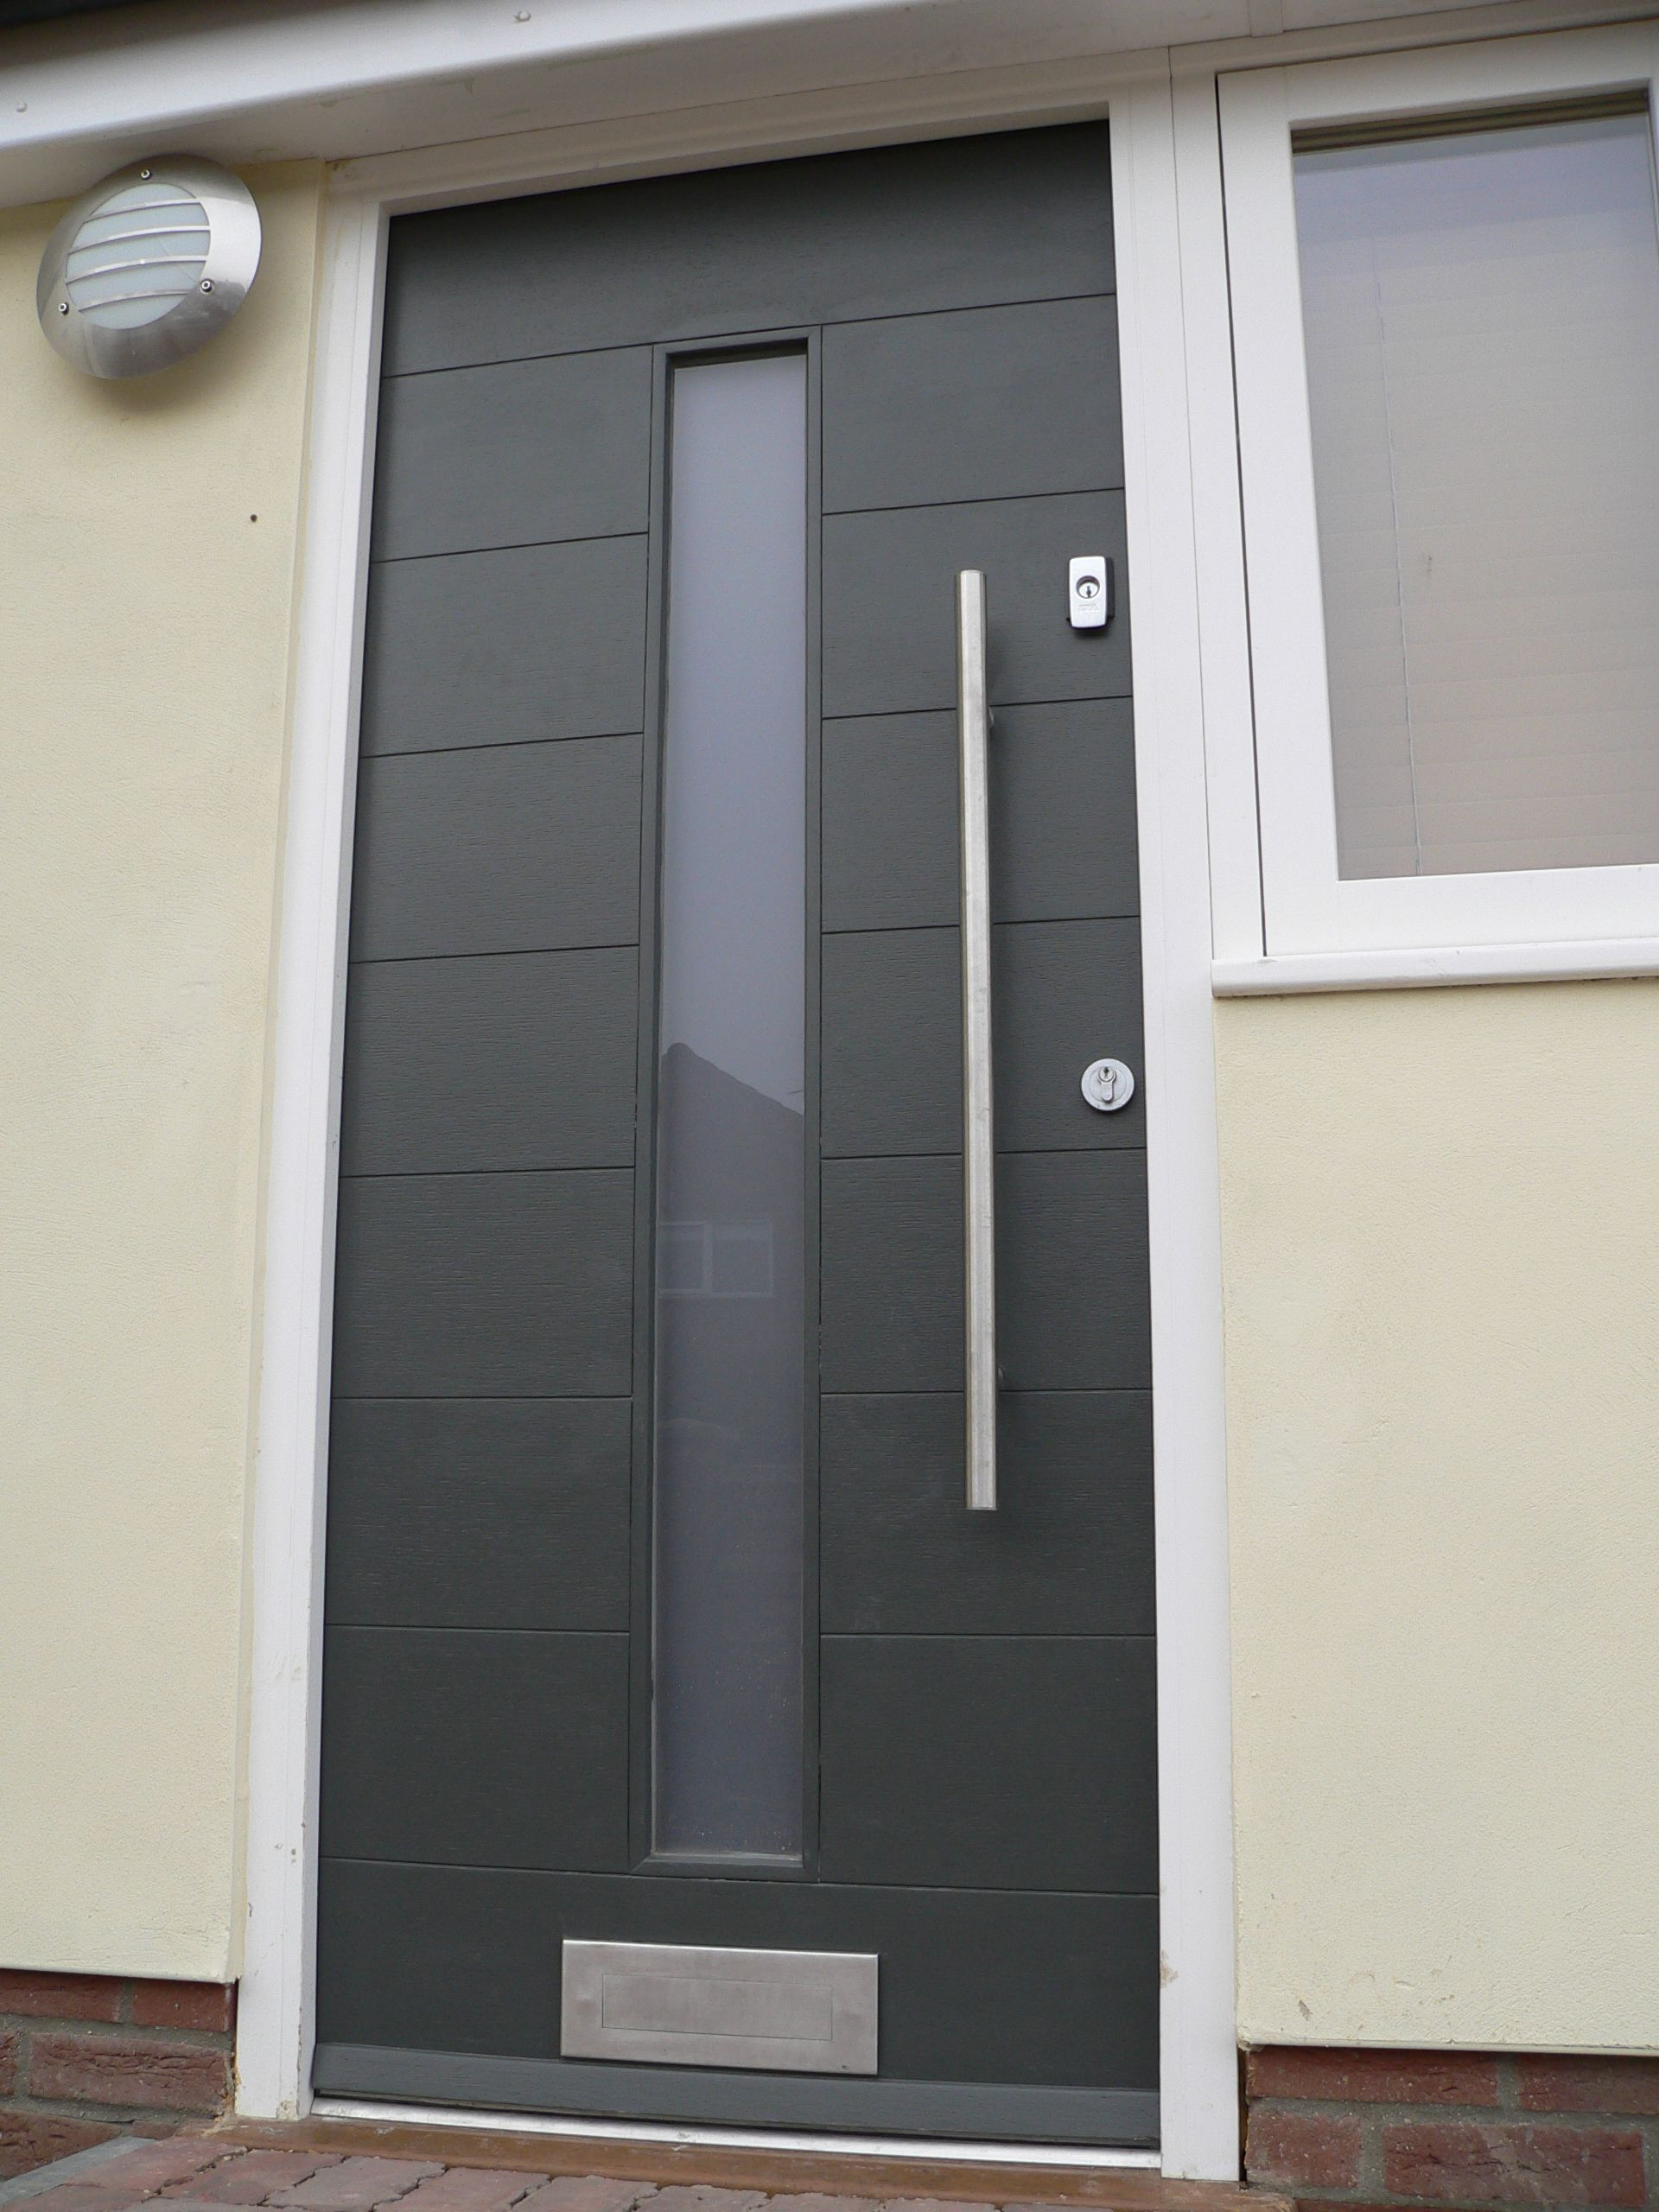 New Modern Entry Doors for Home